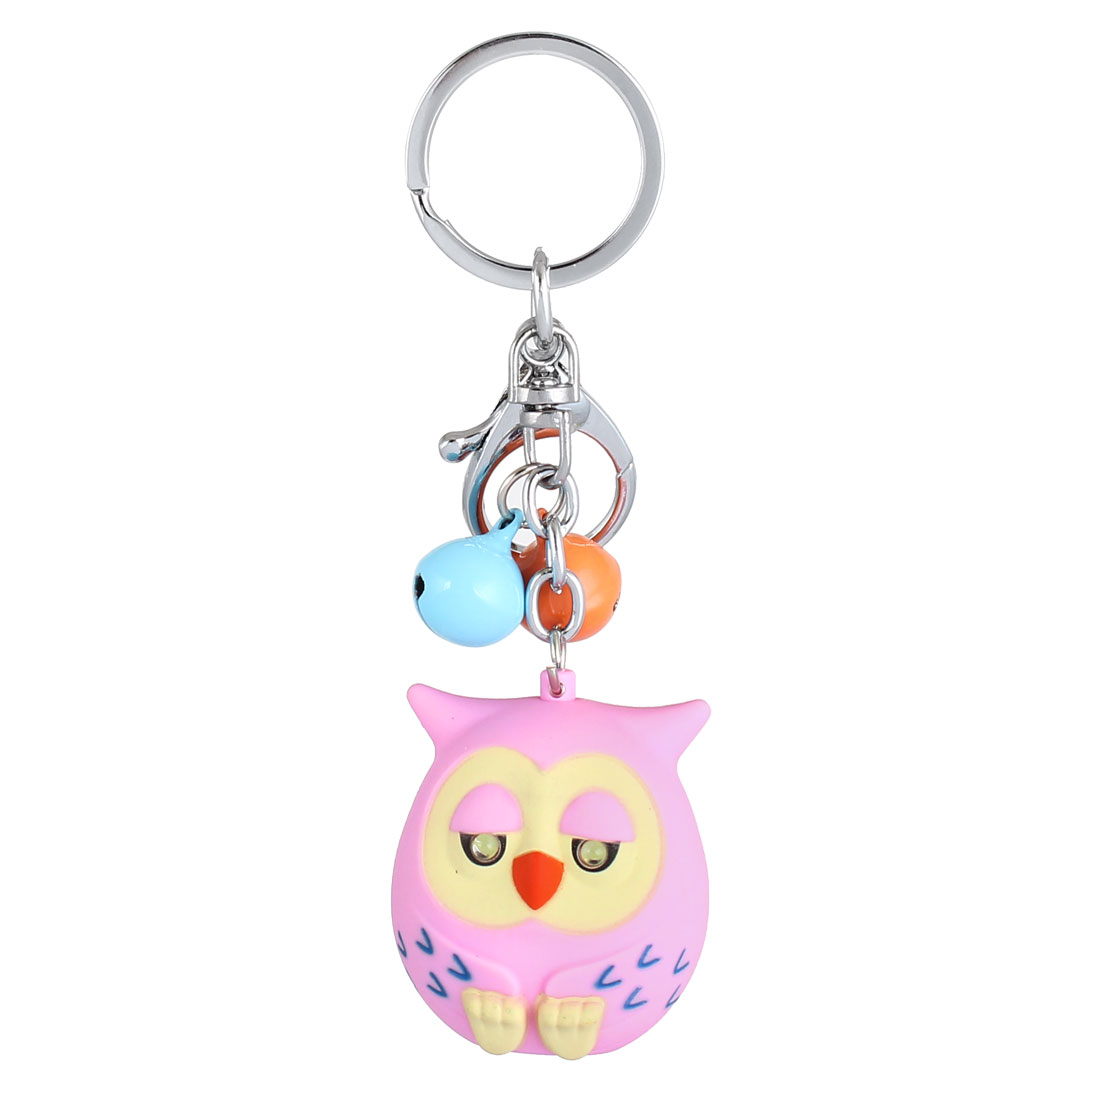 Lobster Clasp Bell Cartoon Bird Pendant Sound Light Keychain Keyring Key Holder Pink